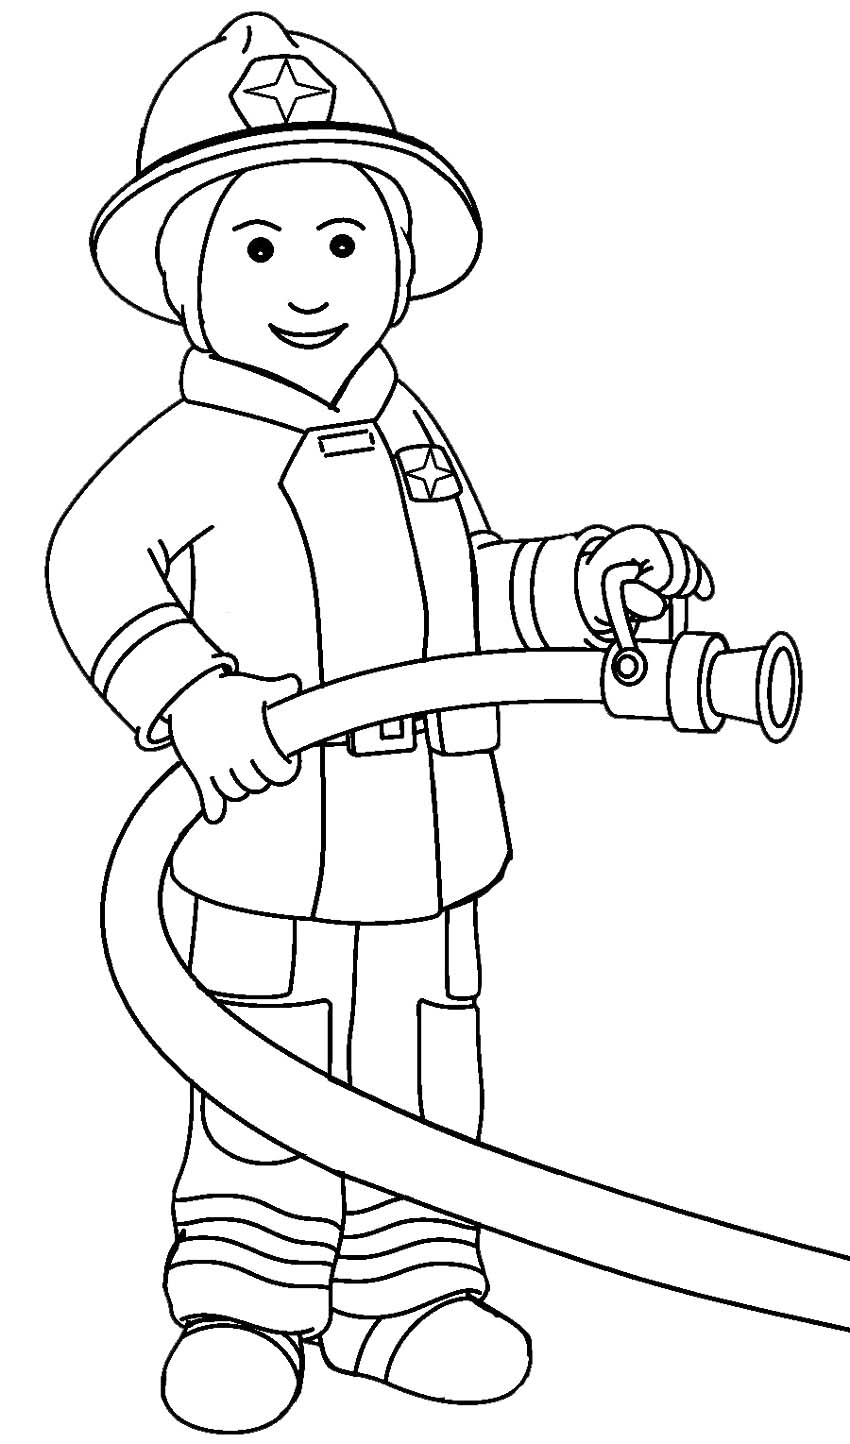 Family, People and Jobs Coloring Sheets: Fireman Jobs Coloring